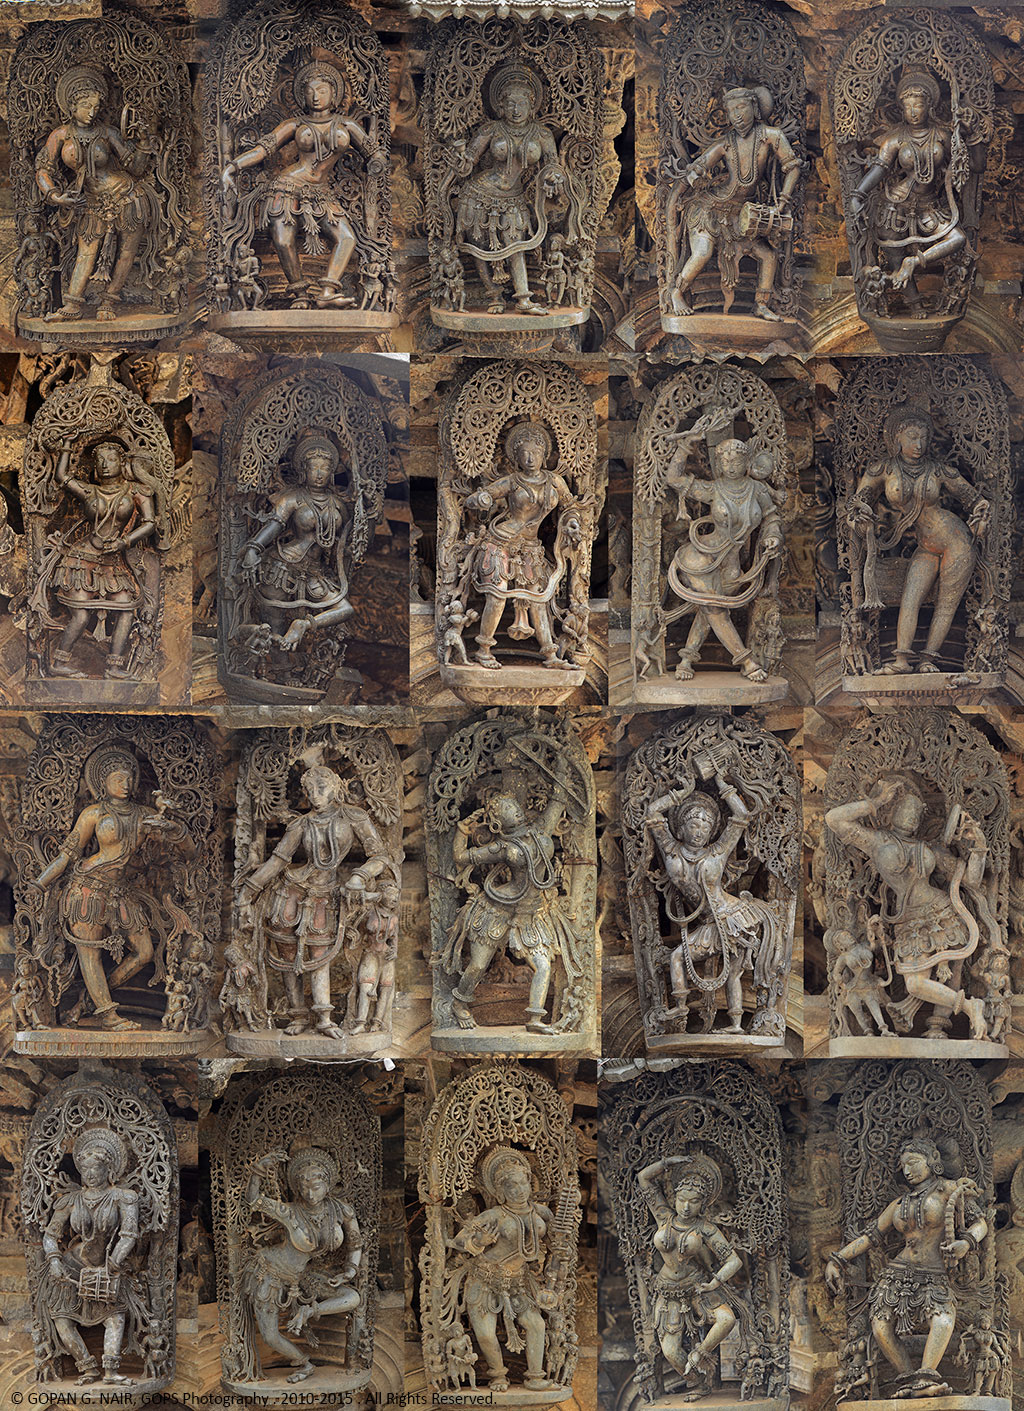 A COLLECTION OF SEVERAL MADANIKA STATUES AT CHENNAKESAVA TEMPLE